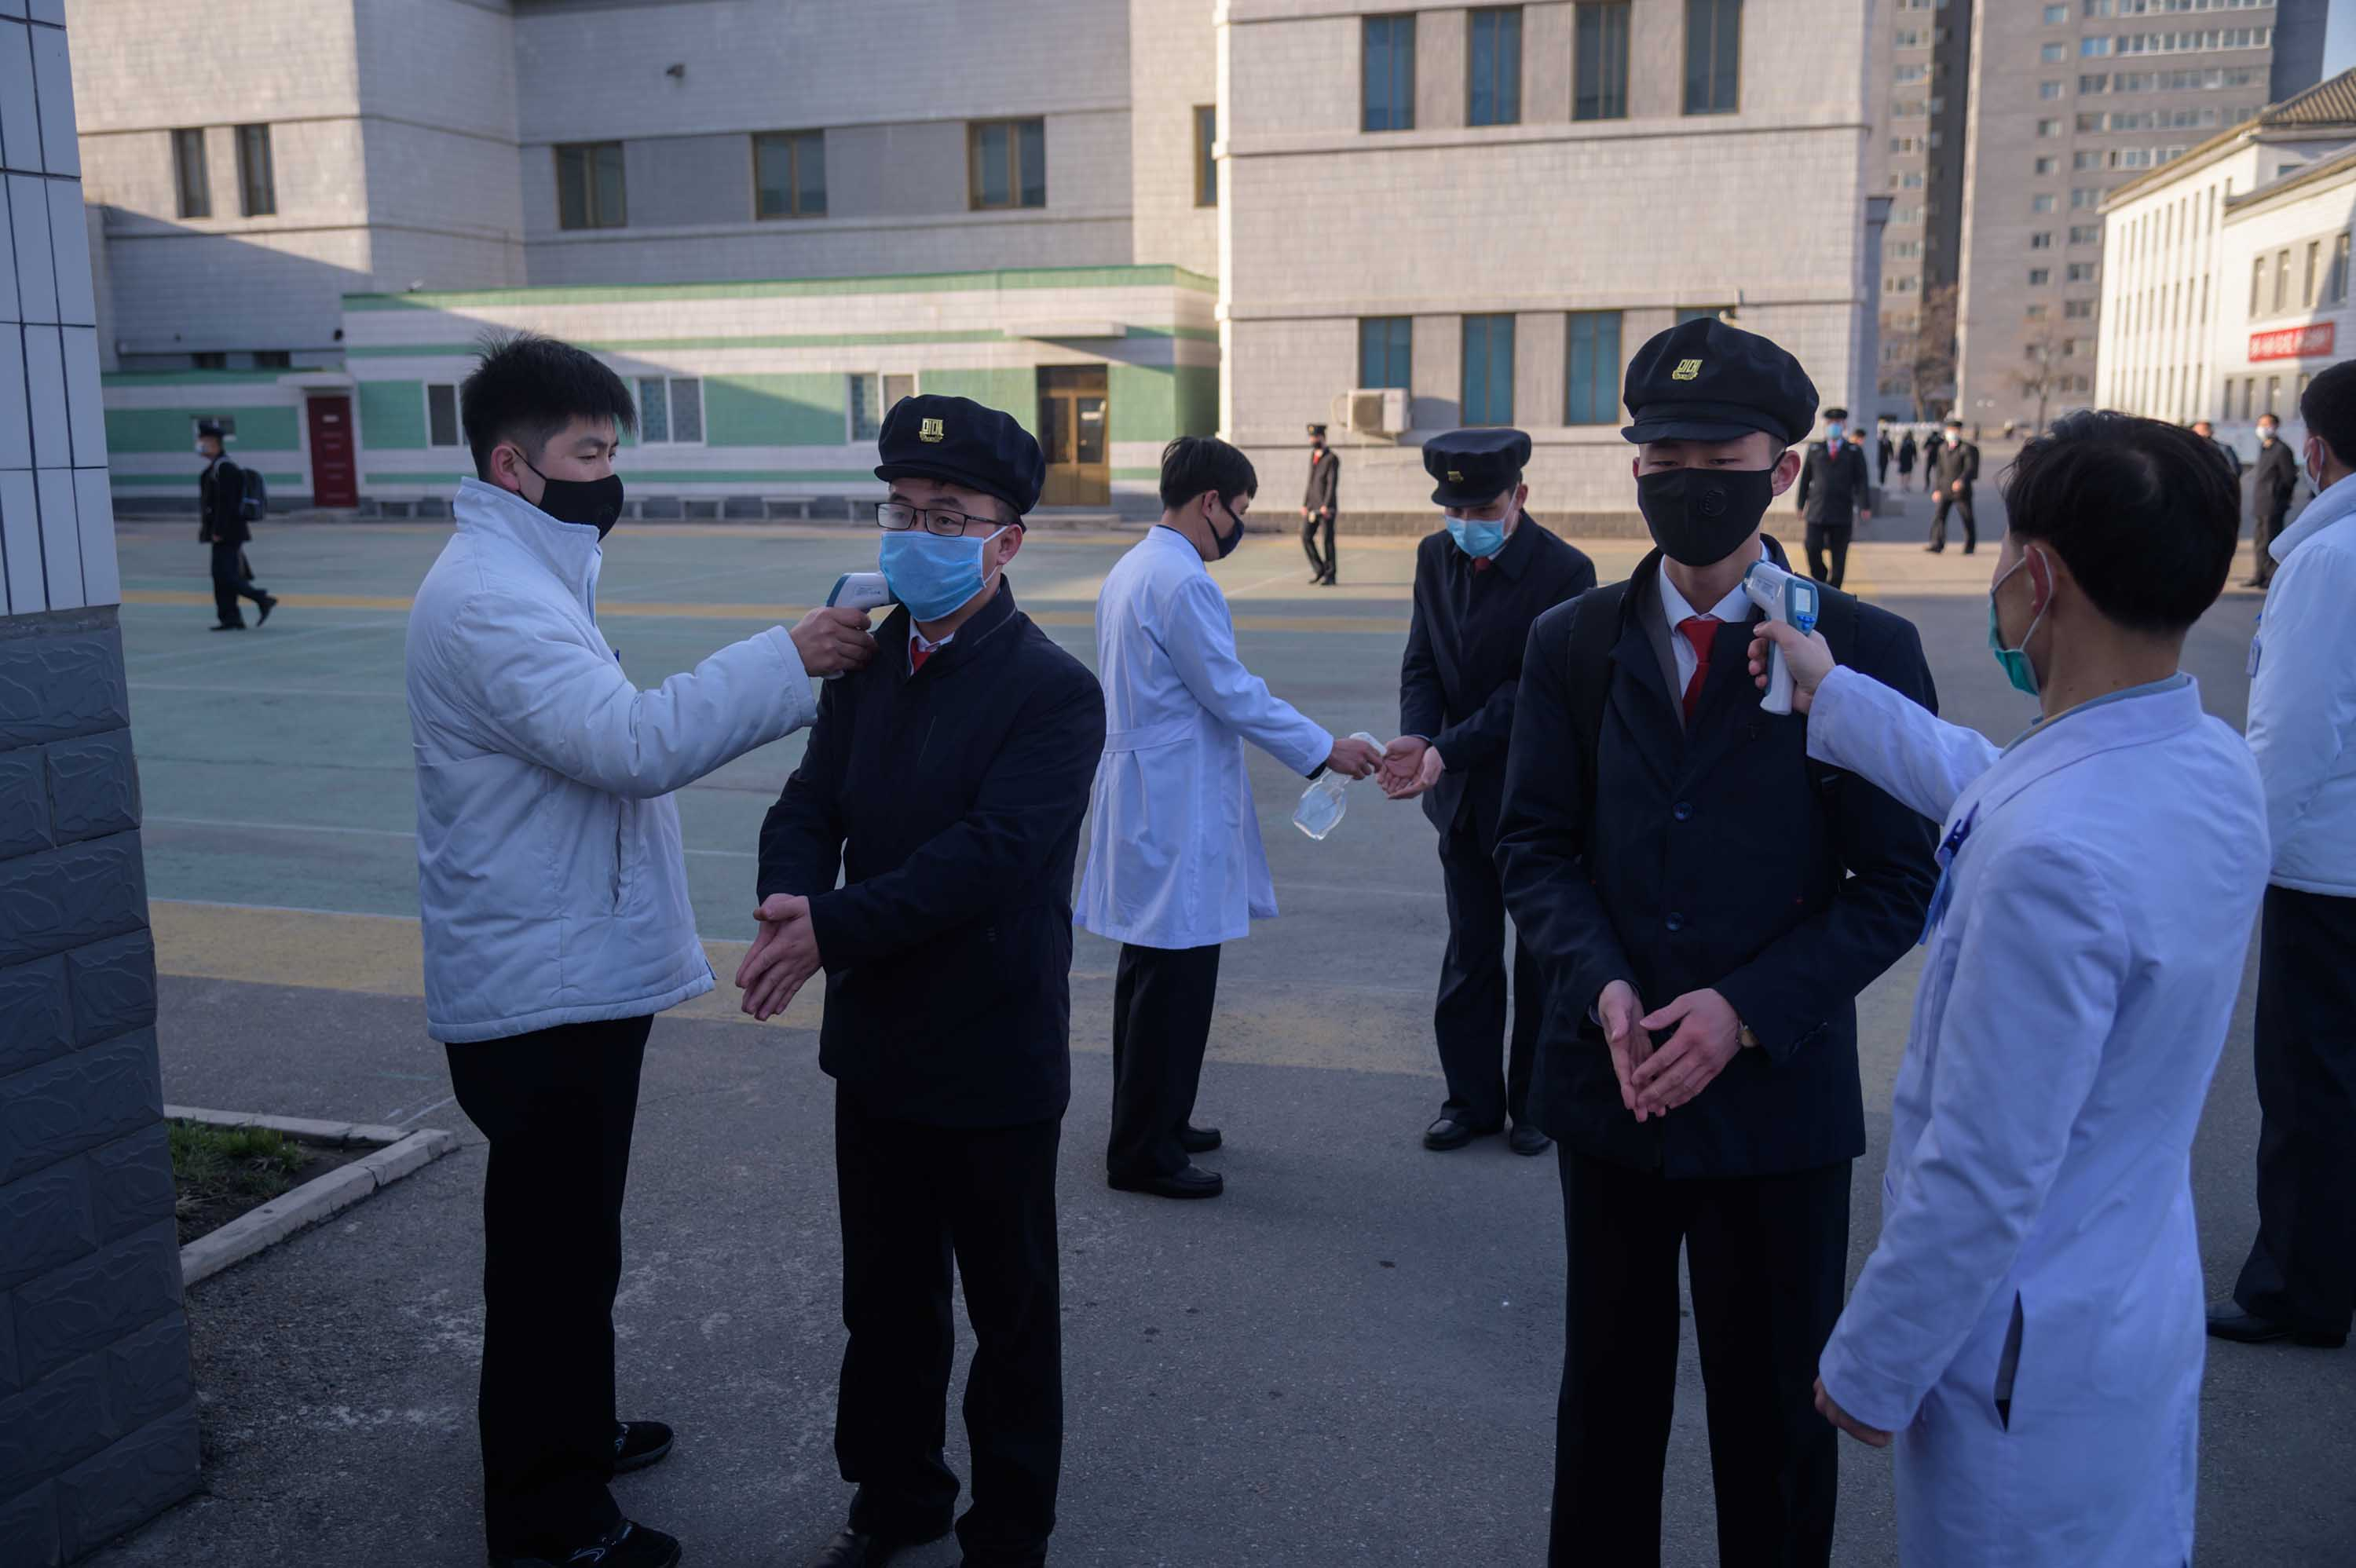 Students wearing face masks disinfect their hands and undergo a temperature check as they arrive for a lecture on preventative measures against coronavirus at the Pyongyang University of Medicine in Pyongyang, North Korea, on April 22.